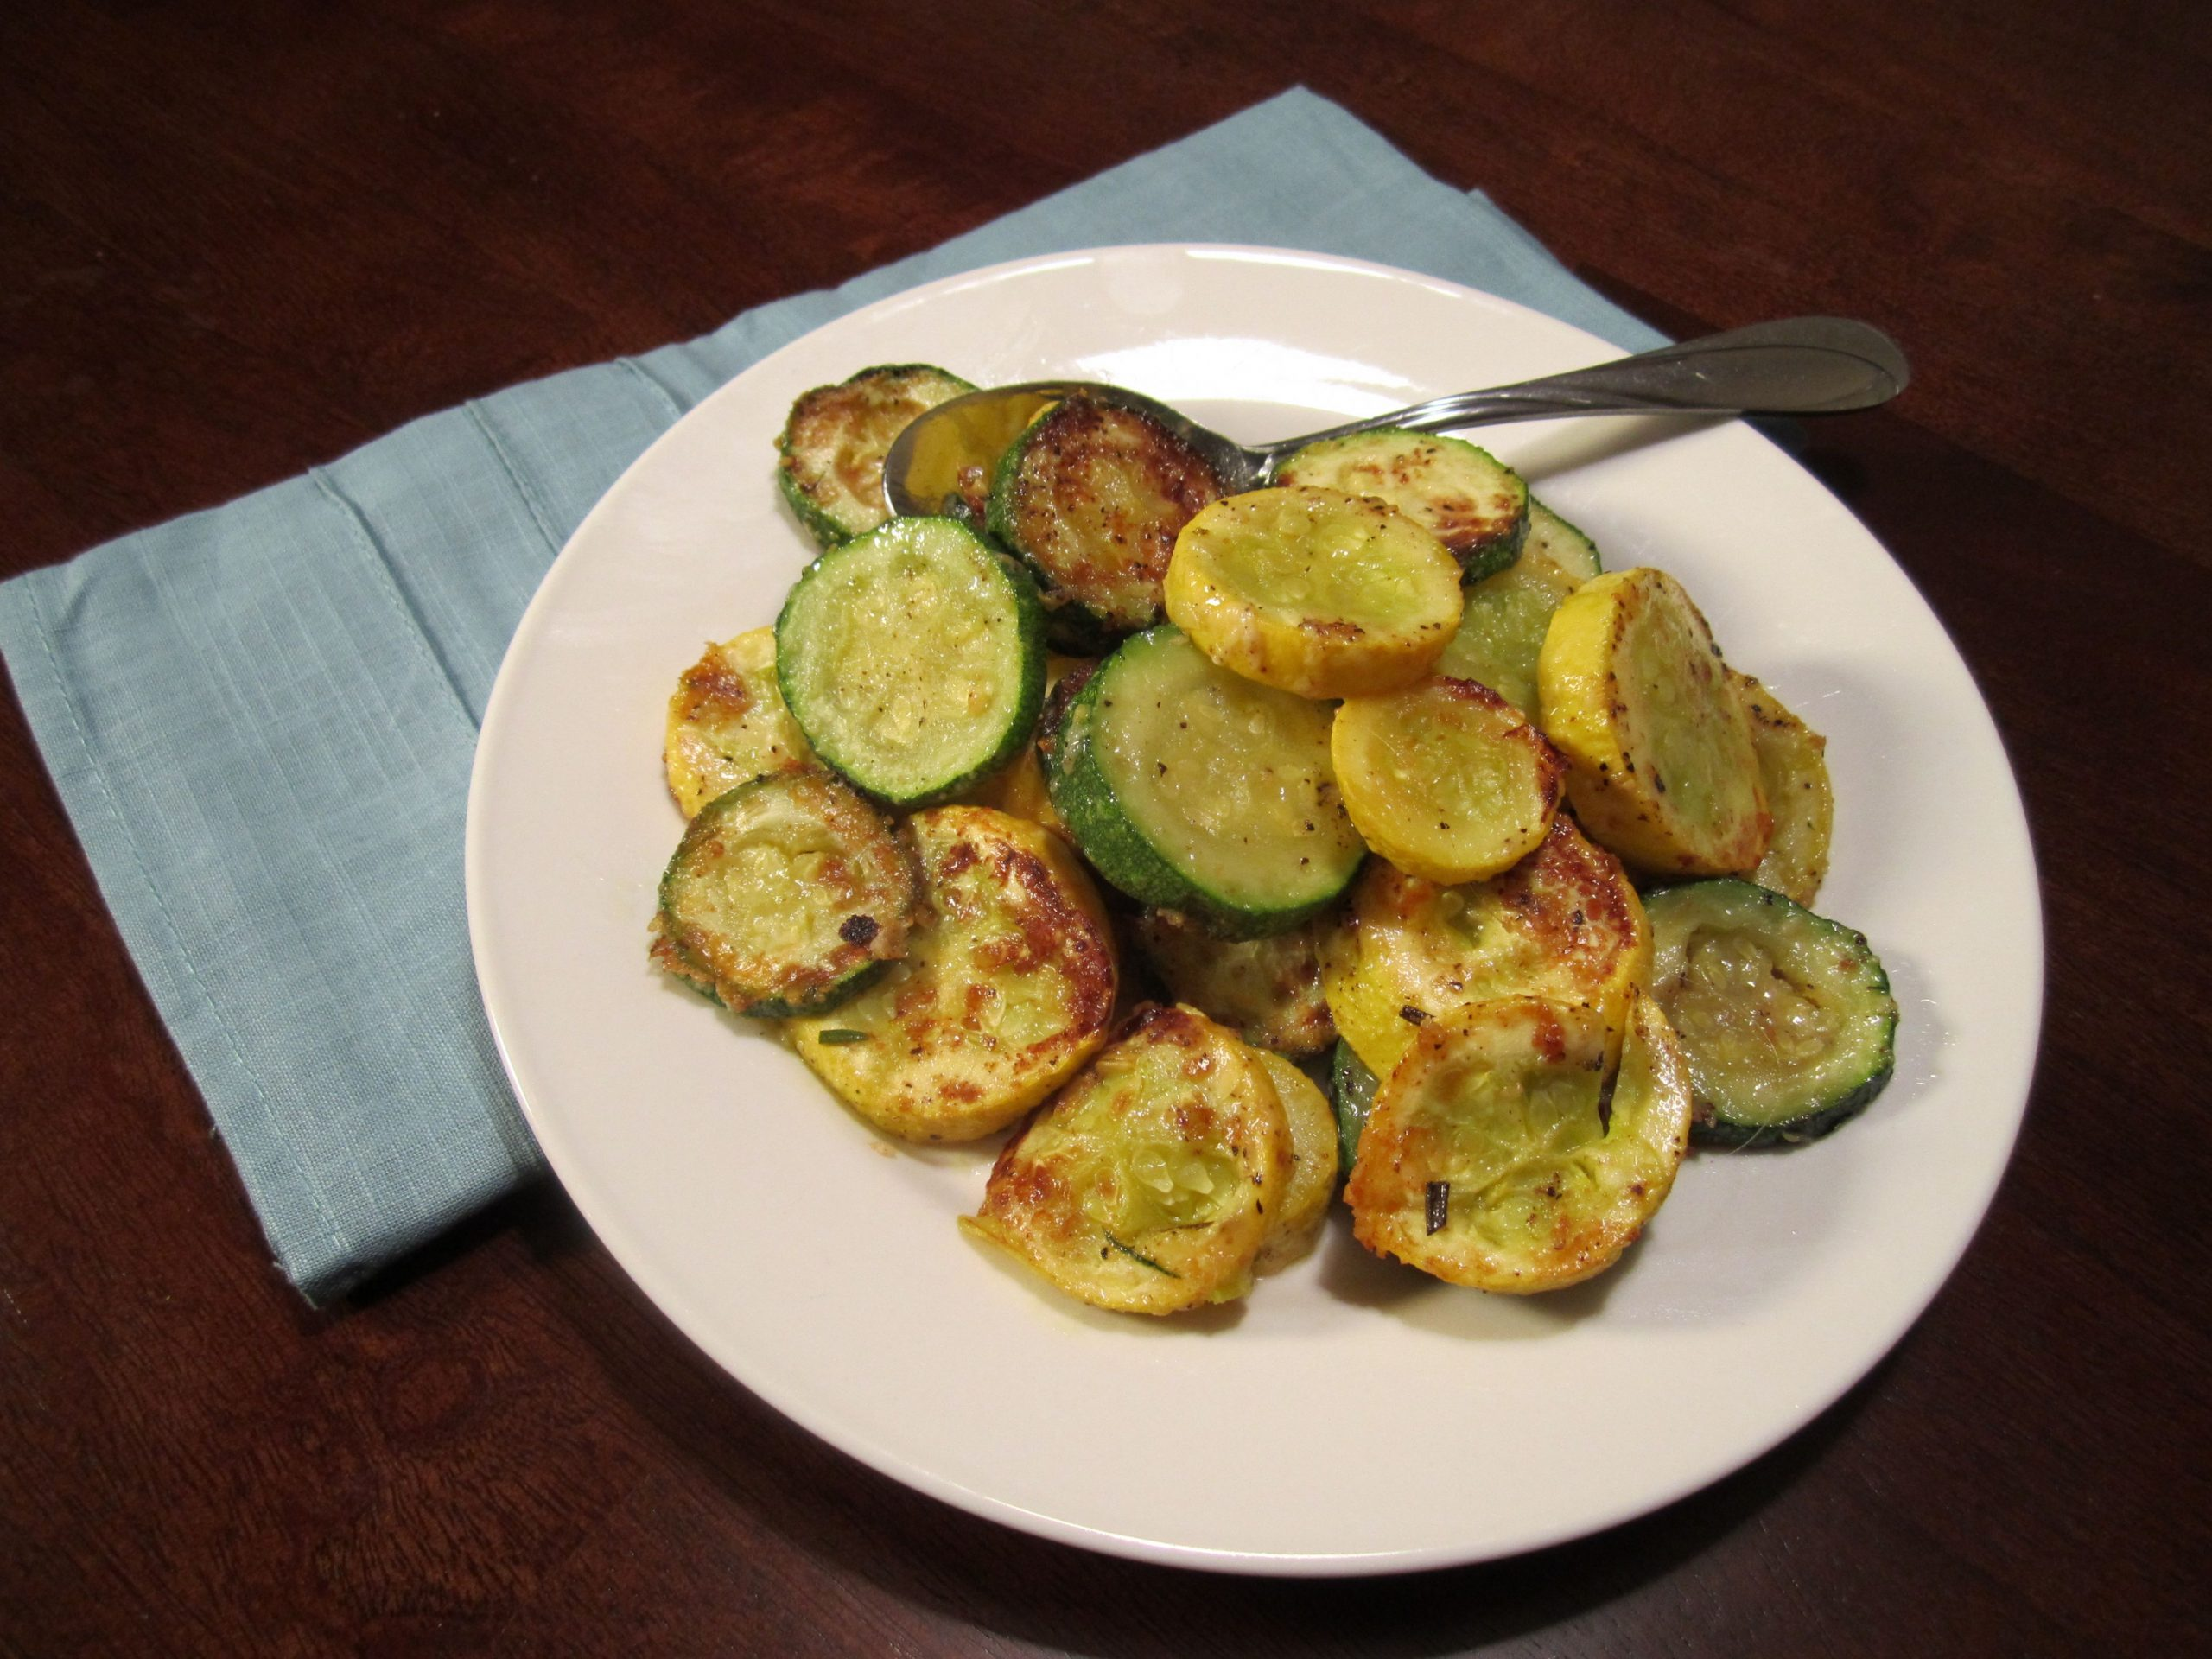 Baked Zucchini and Squash - Eat. Drink. Love.